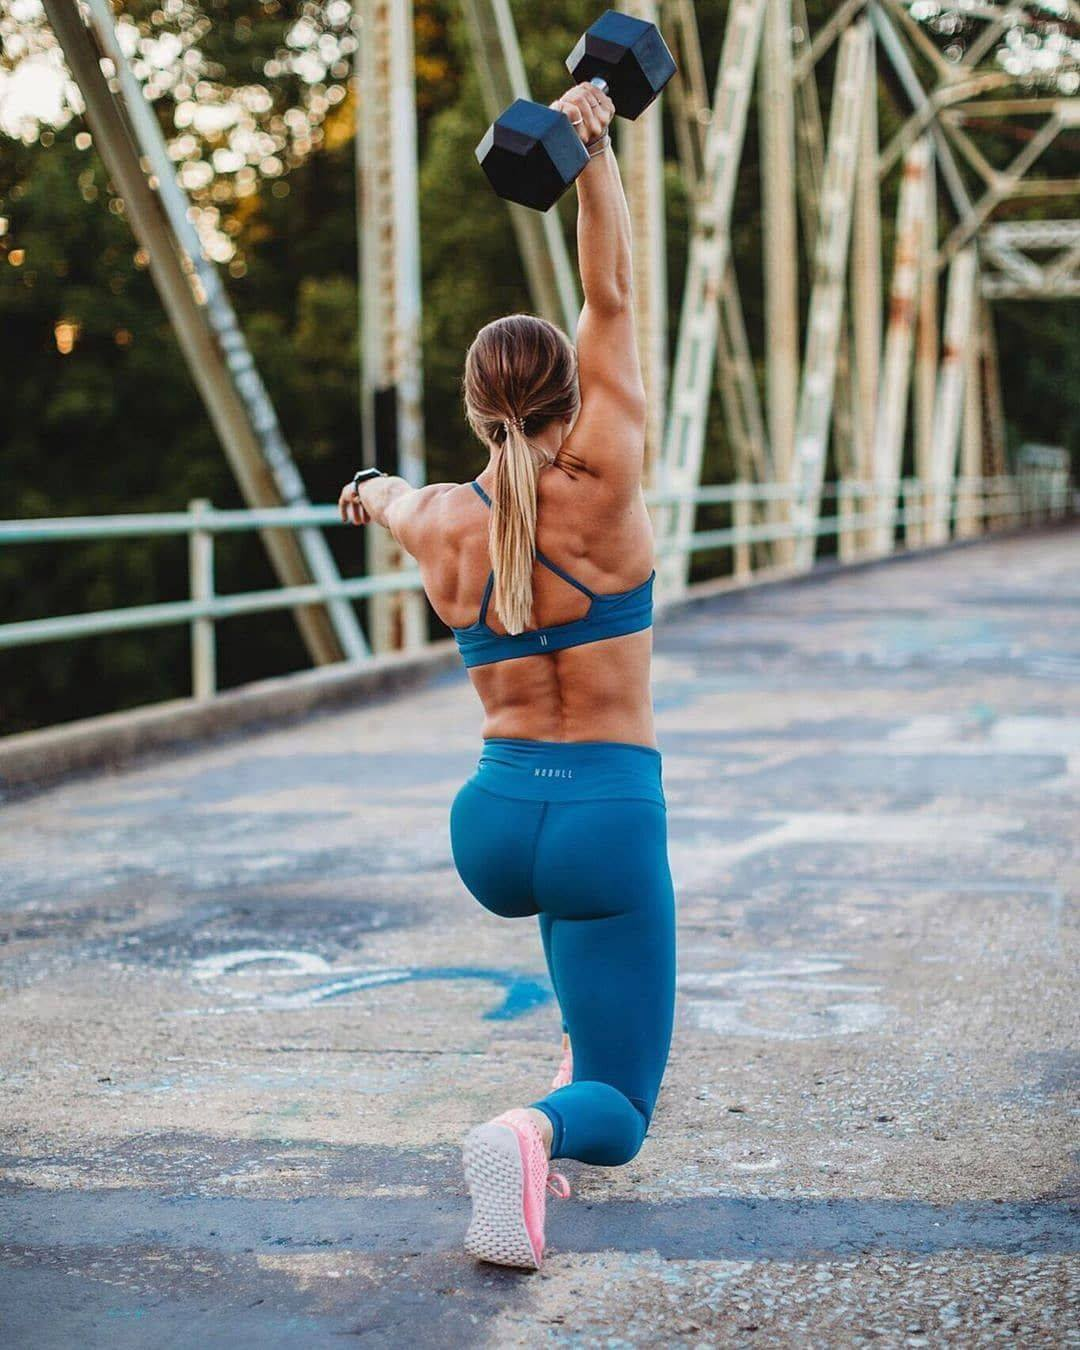 Women's Endurance Workouts